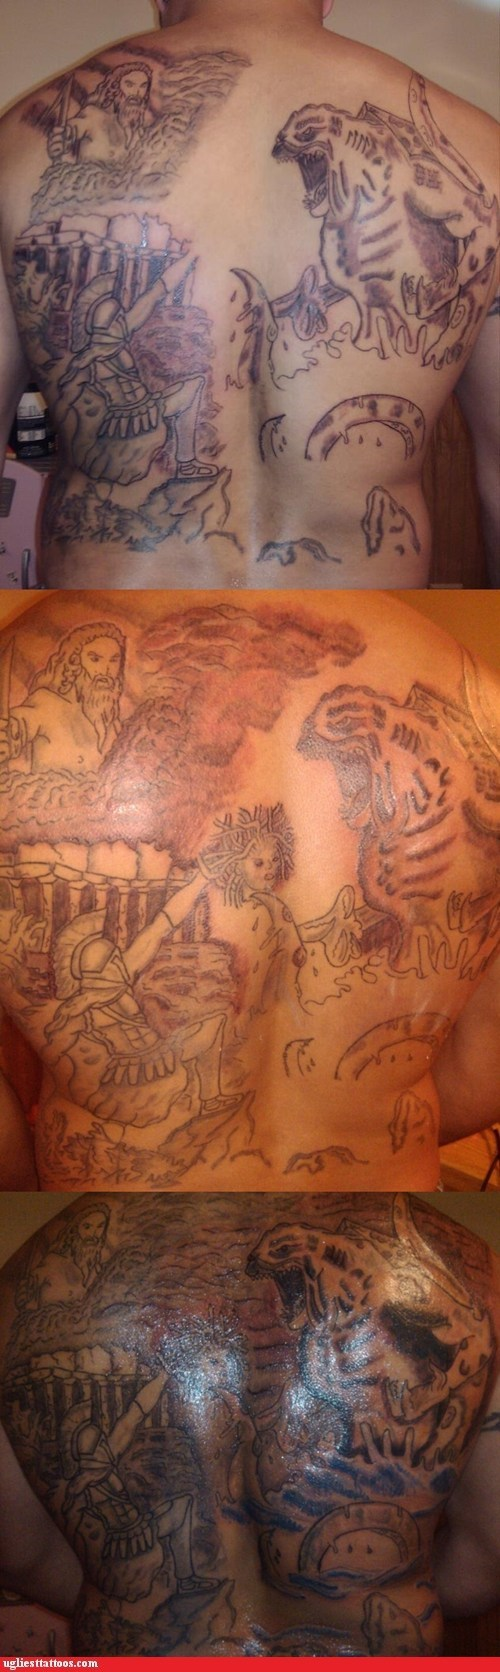 clash of the titans godzilla back tattoos - 7021140480